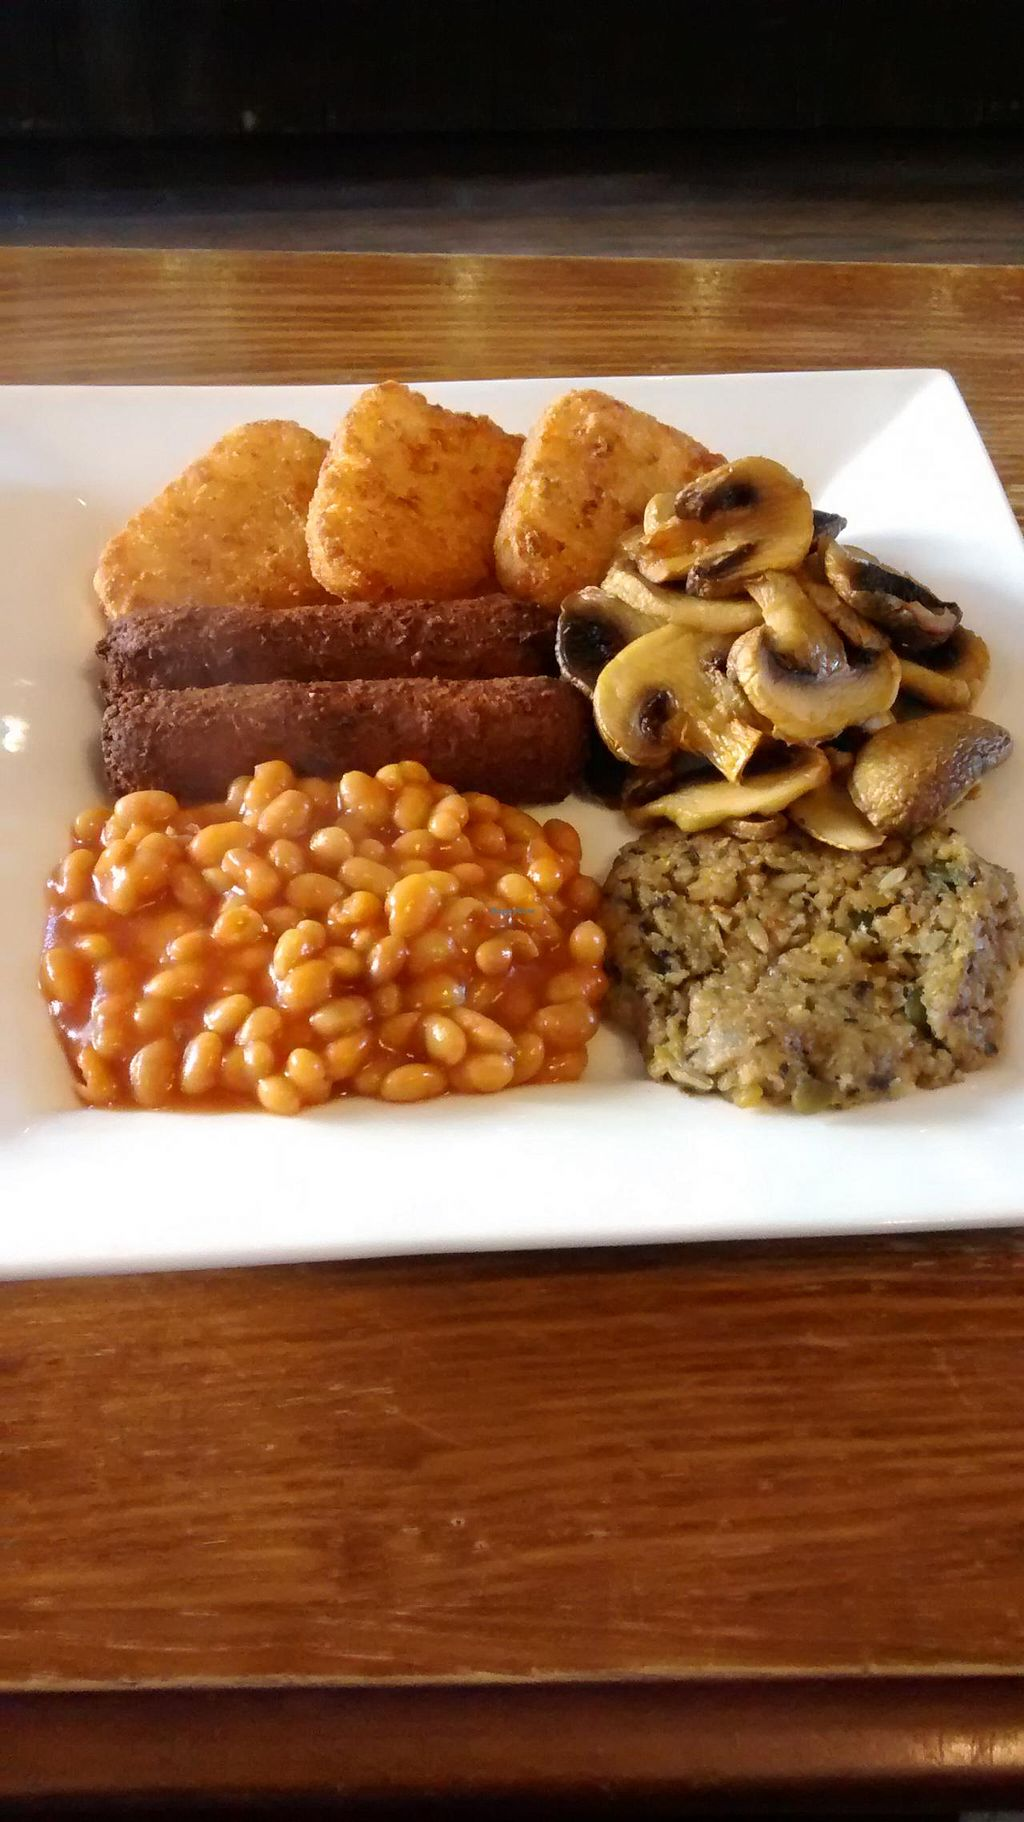 """Photo of The Auld Hoose  by <a href=""""/members/profile/craigmc"""">craigmc</a> <br/>Vegan breakfast <br/> April 7, 2015  - <a href='/contact/abuse/image/42585/98185'>Report</a>"""